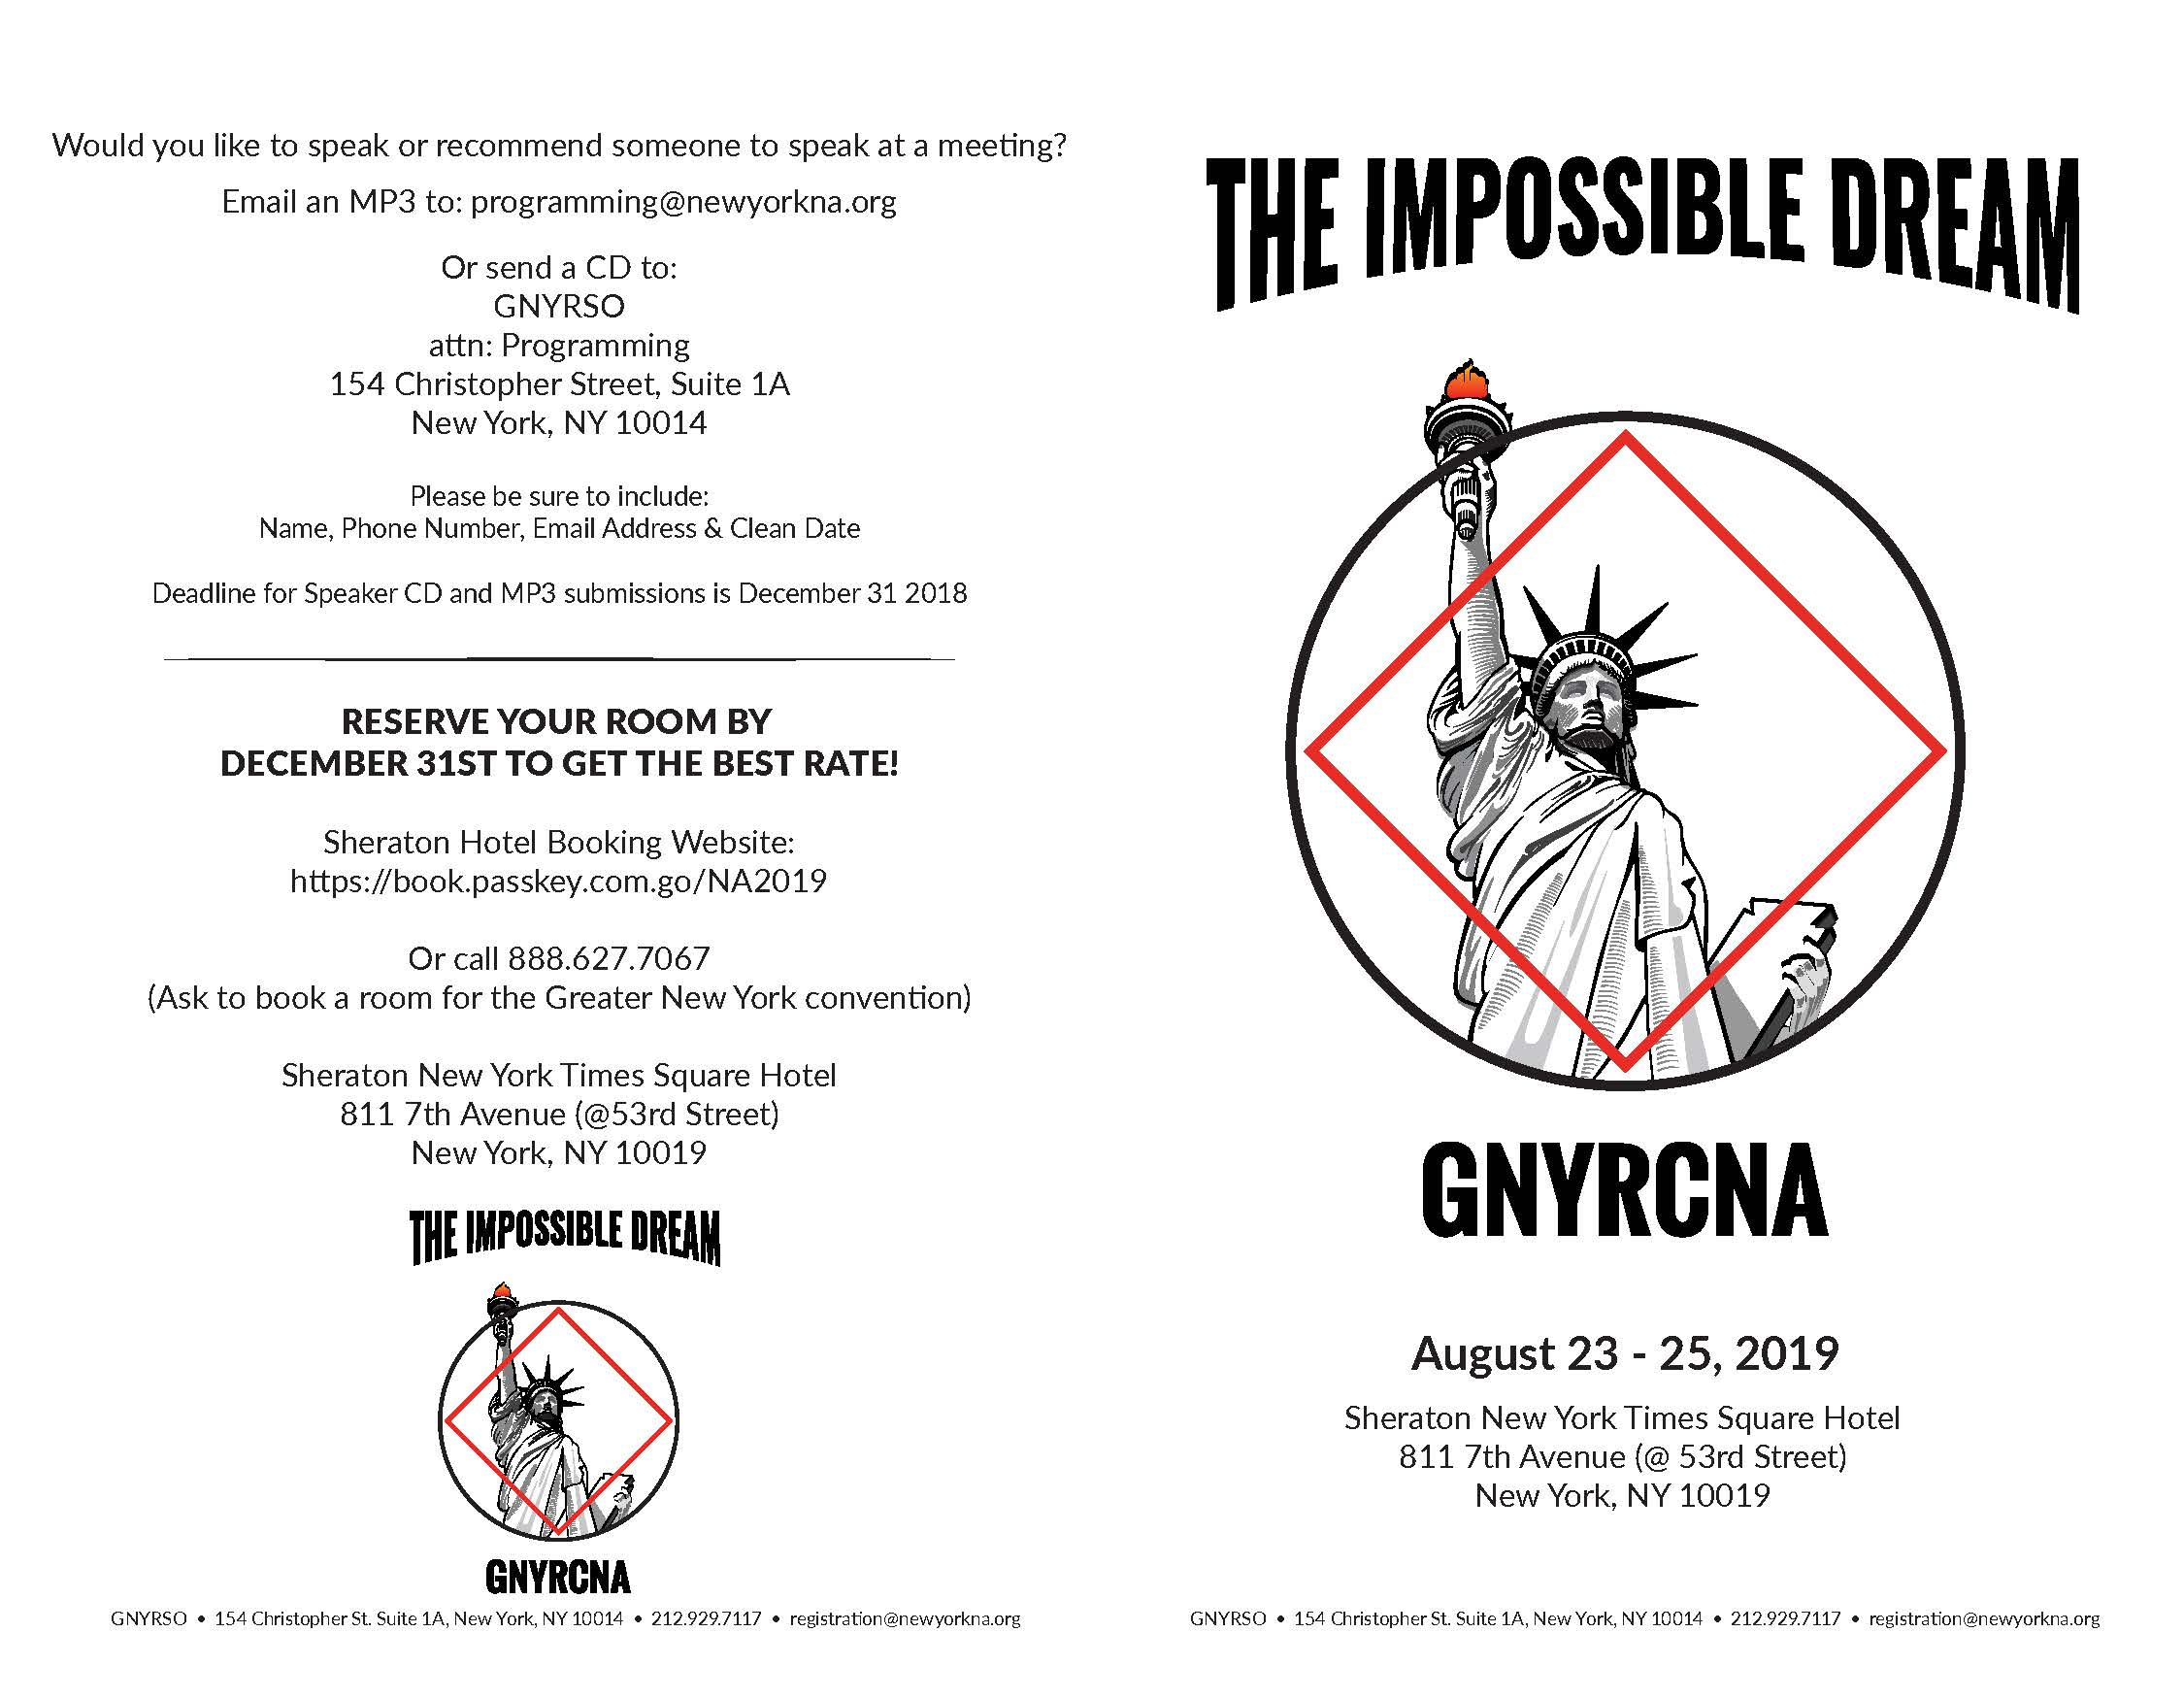 Registration for The Impossible Dream GNYR Convention